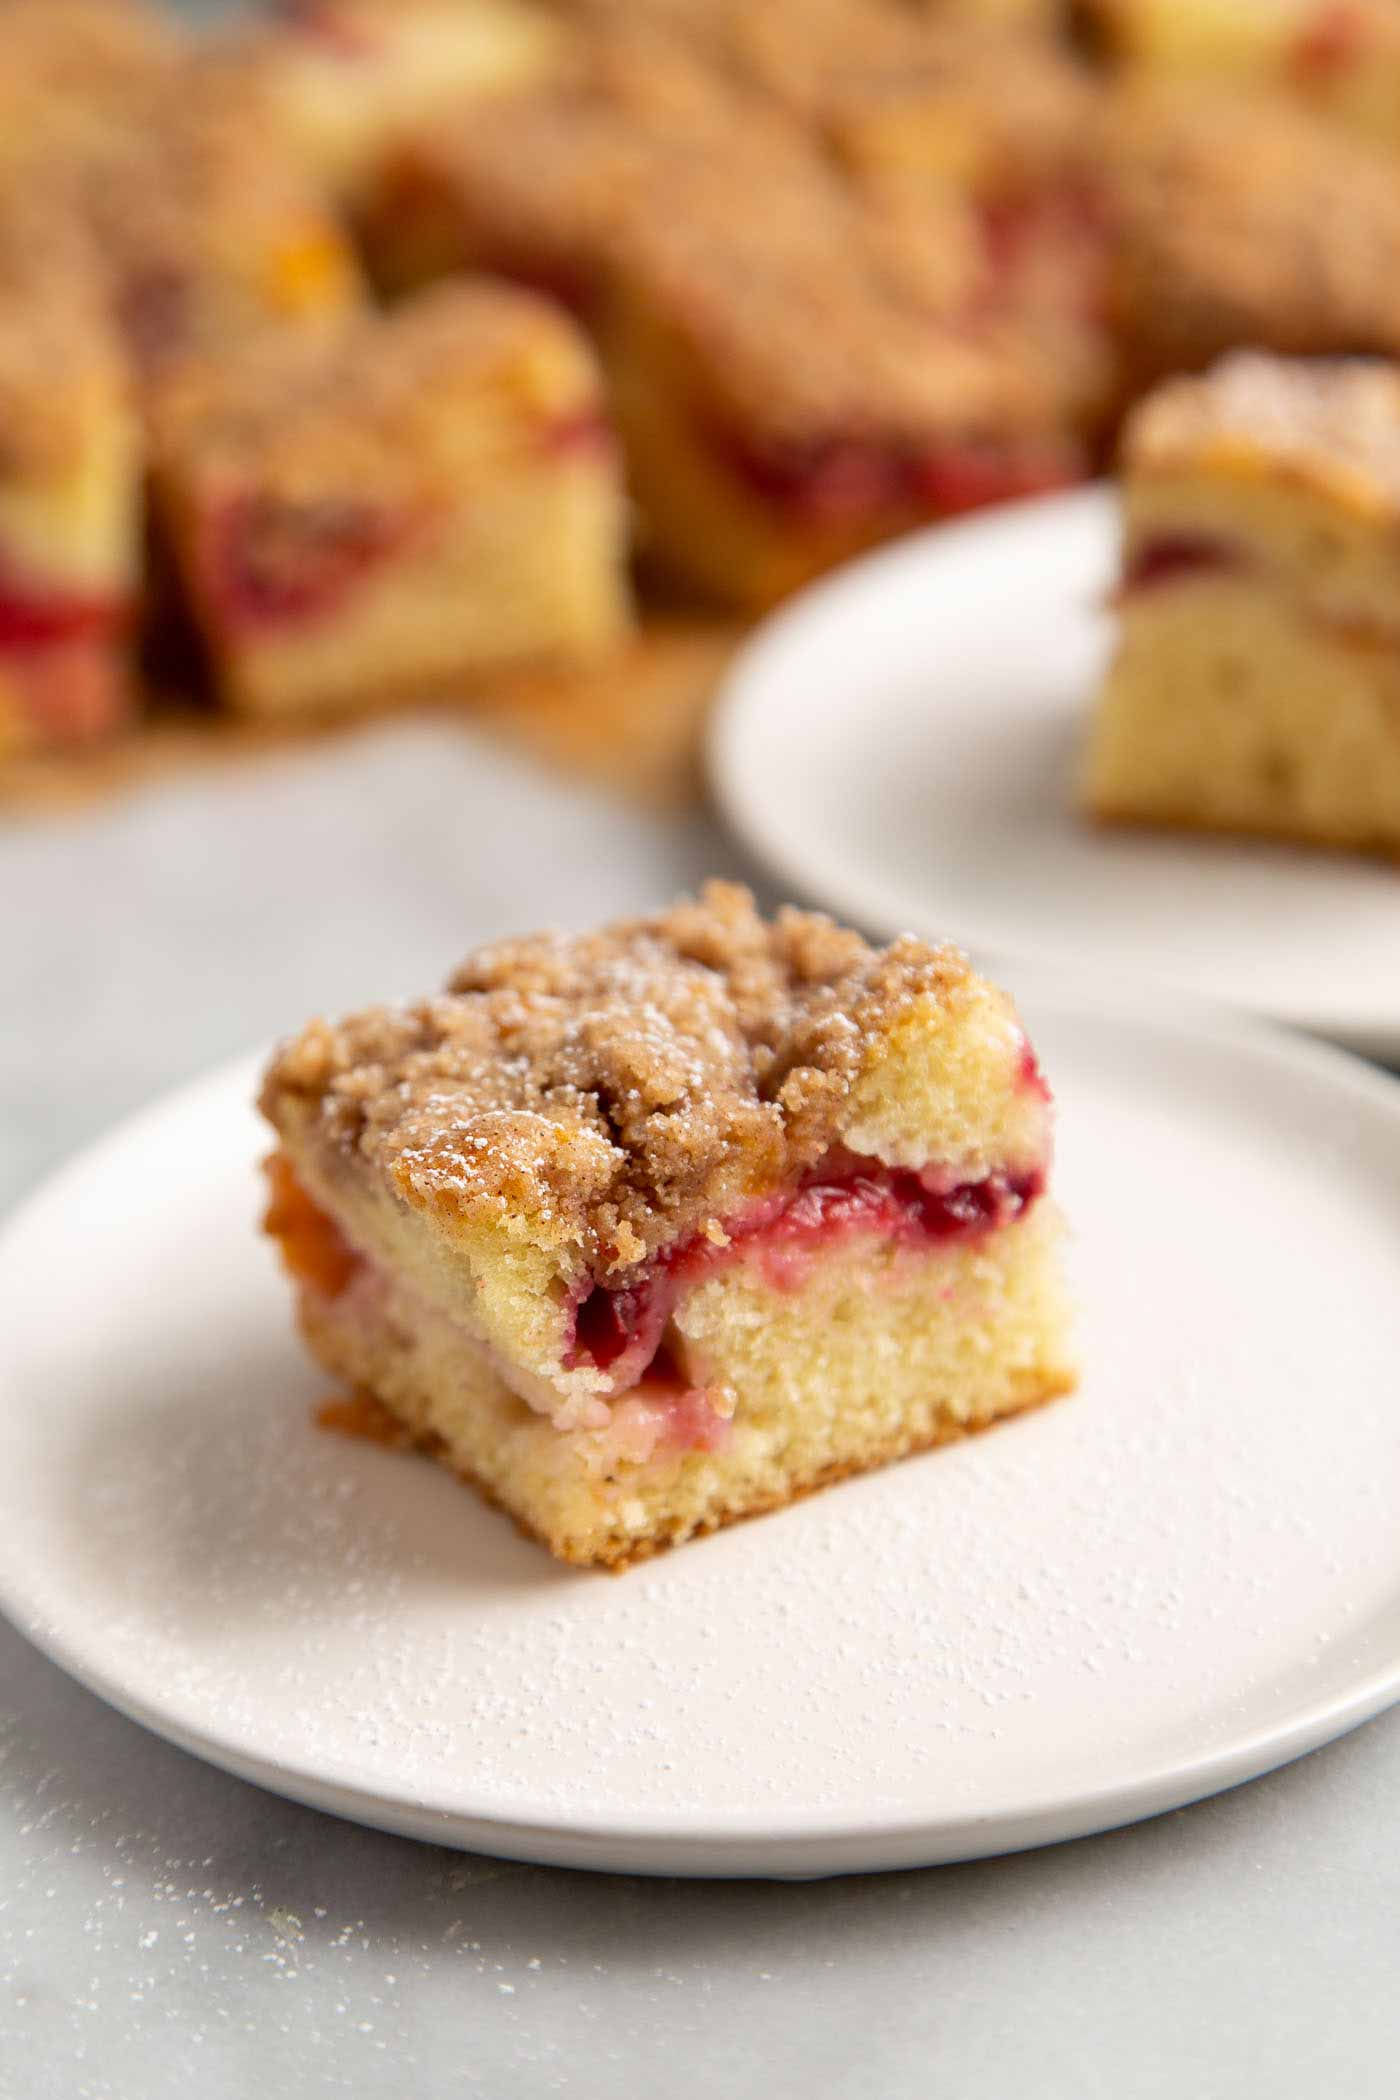 Slice of Plumcot Crumb Cake